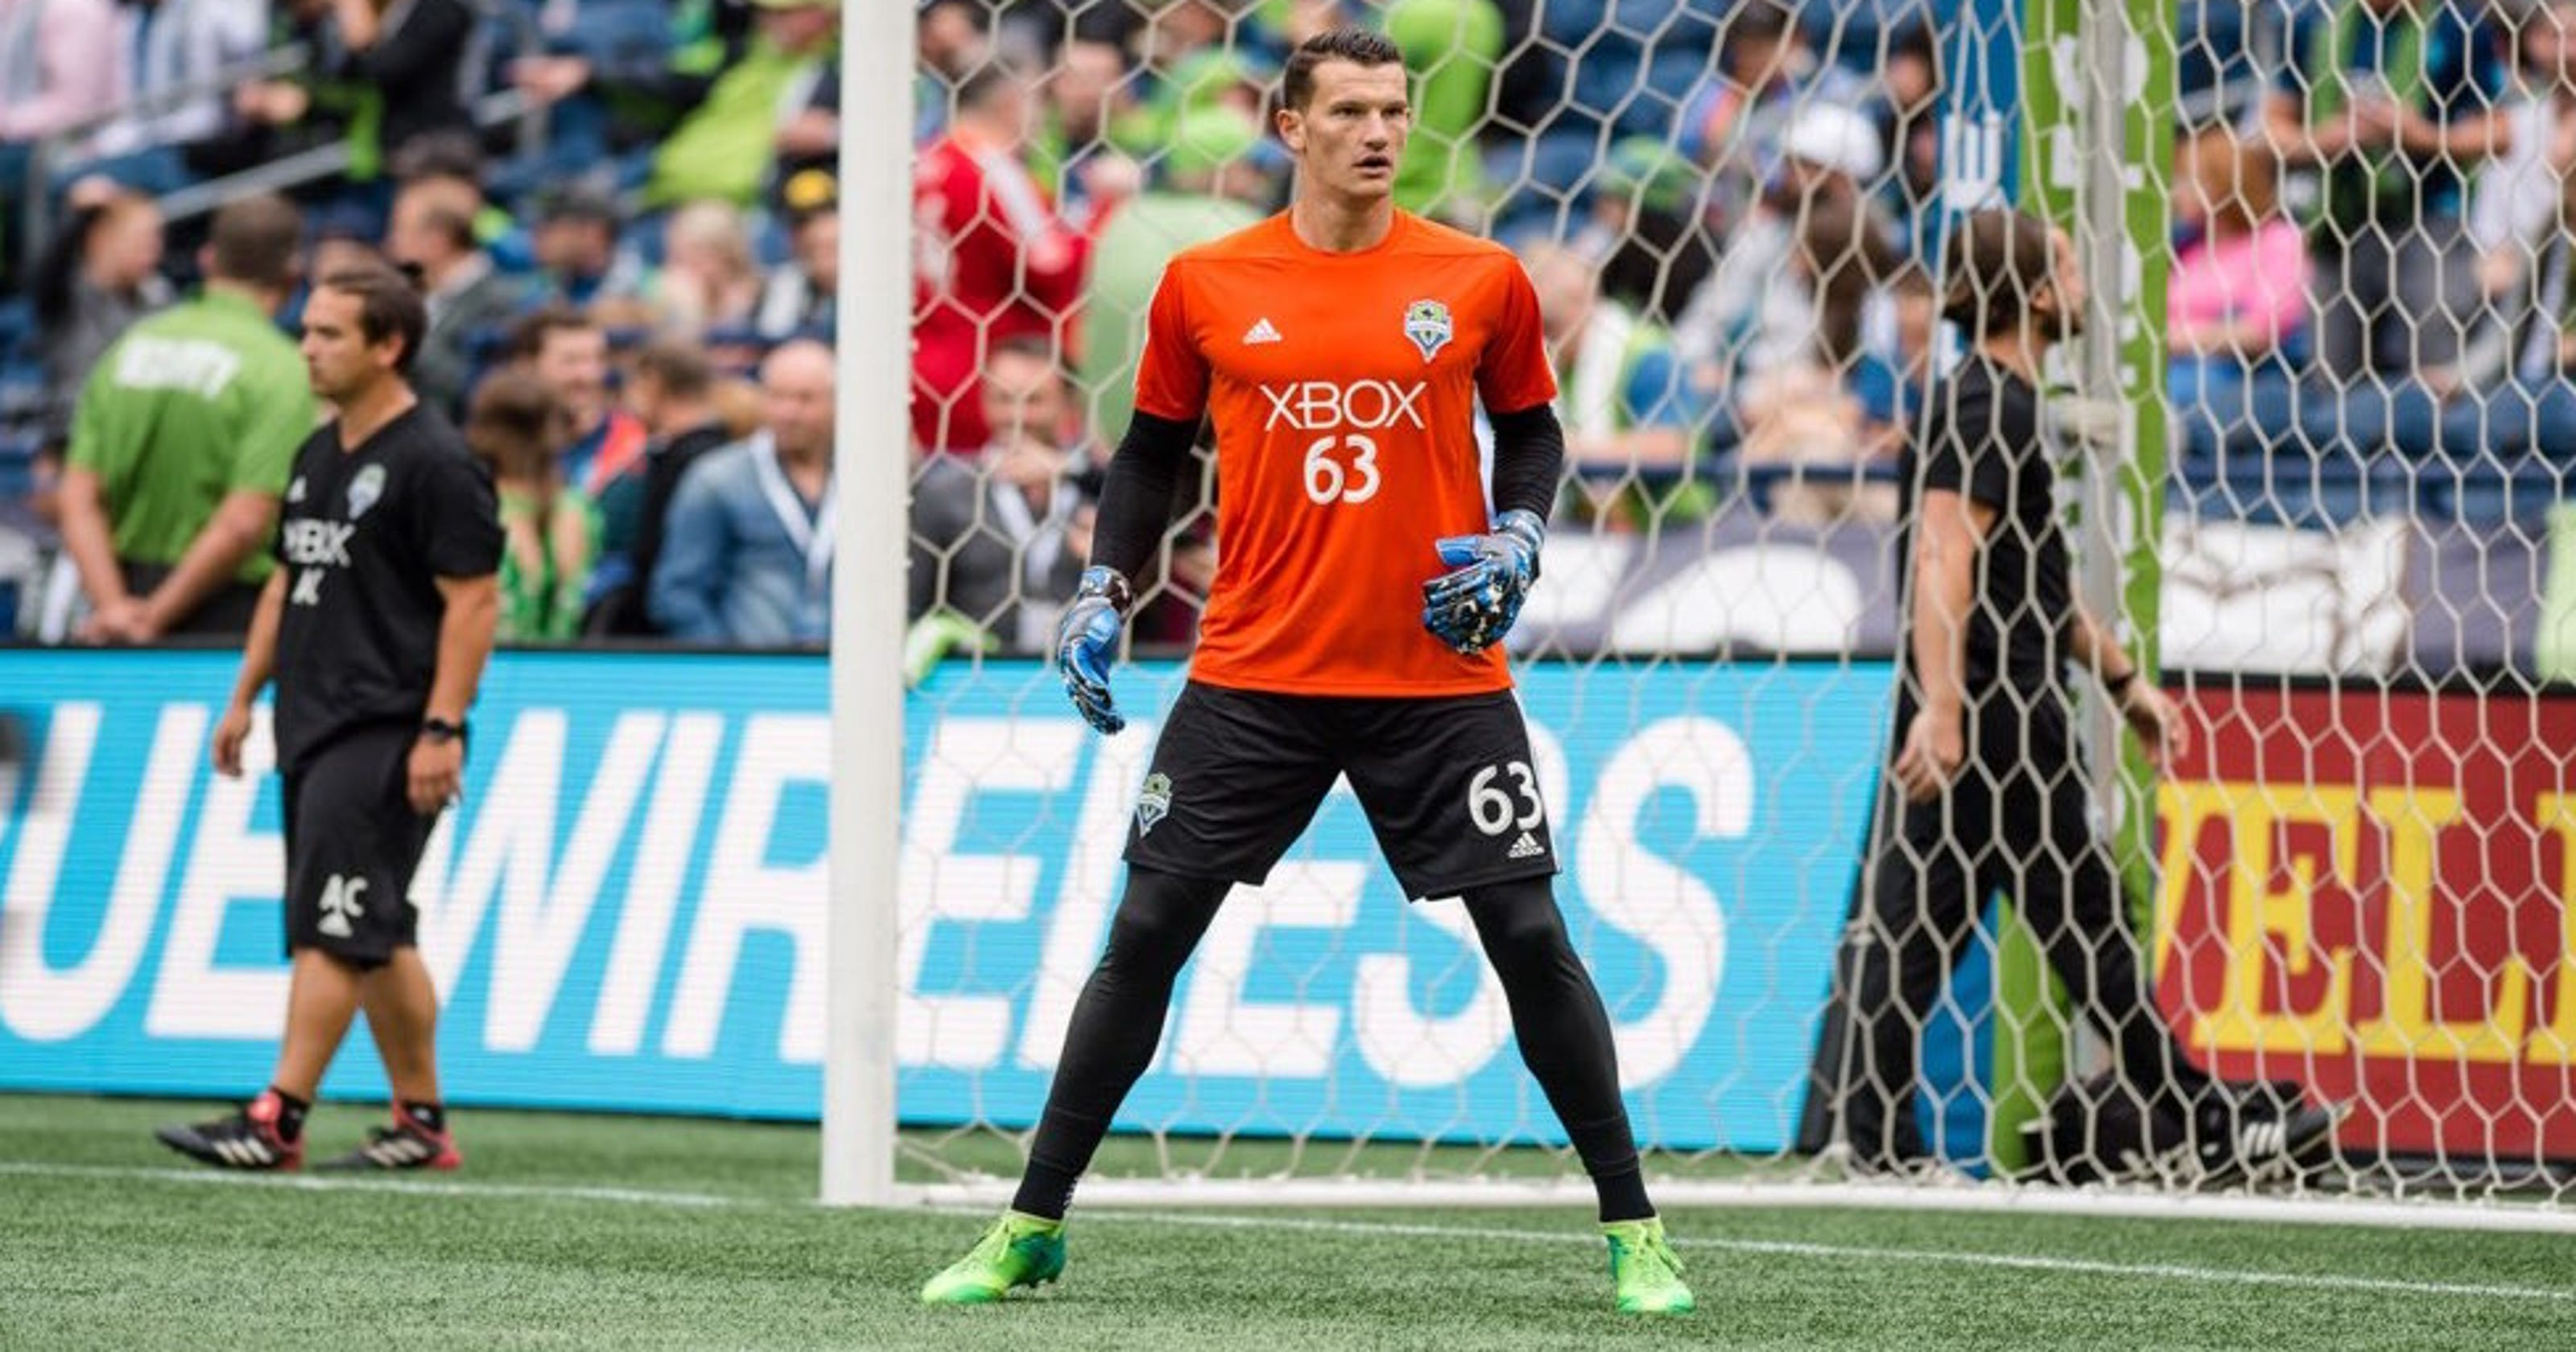 df13af48735 Former Kitsap Pumas goalkeeper Lubin cherishes short stay with Sounders